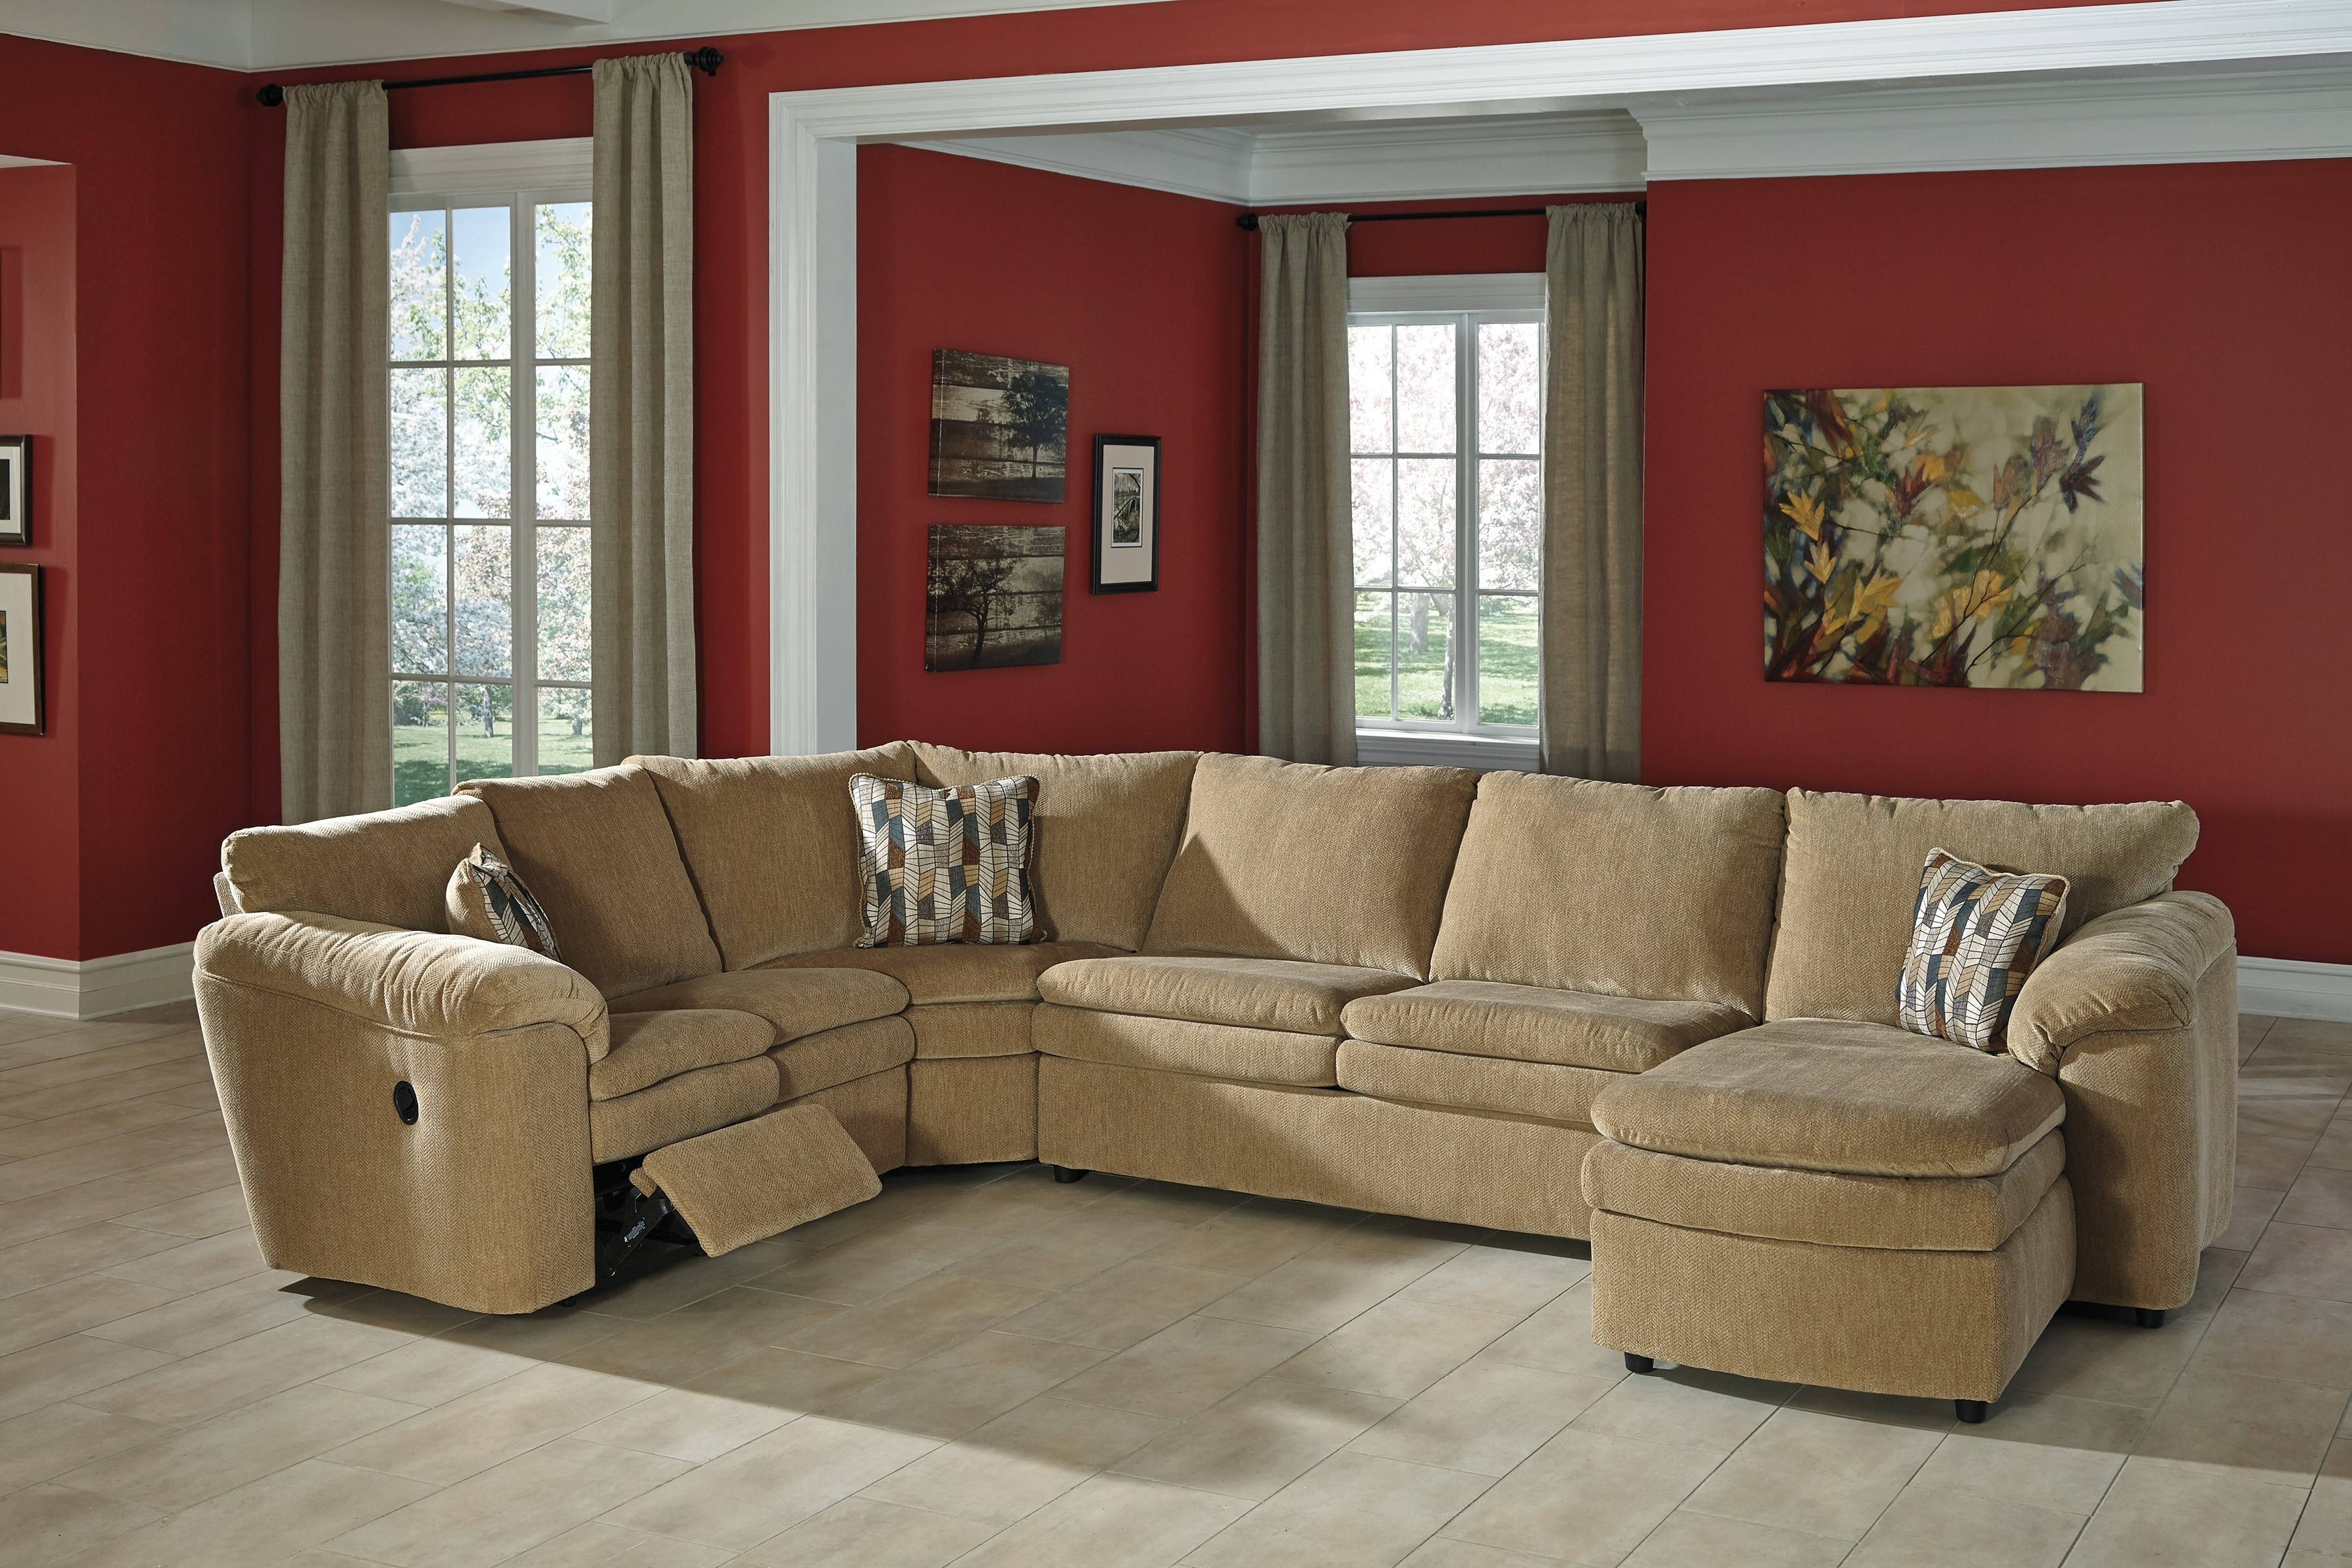 Sectional Sofa Corduroy 15 Inspirations Of Ashley Furniture Brown Corduroy